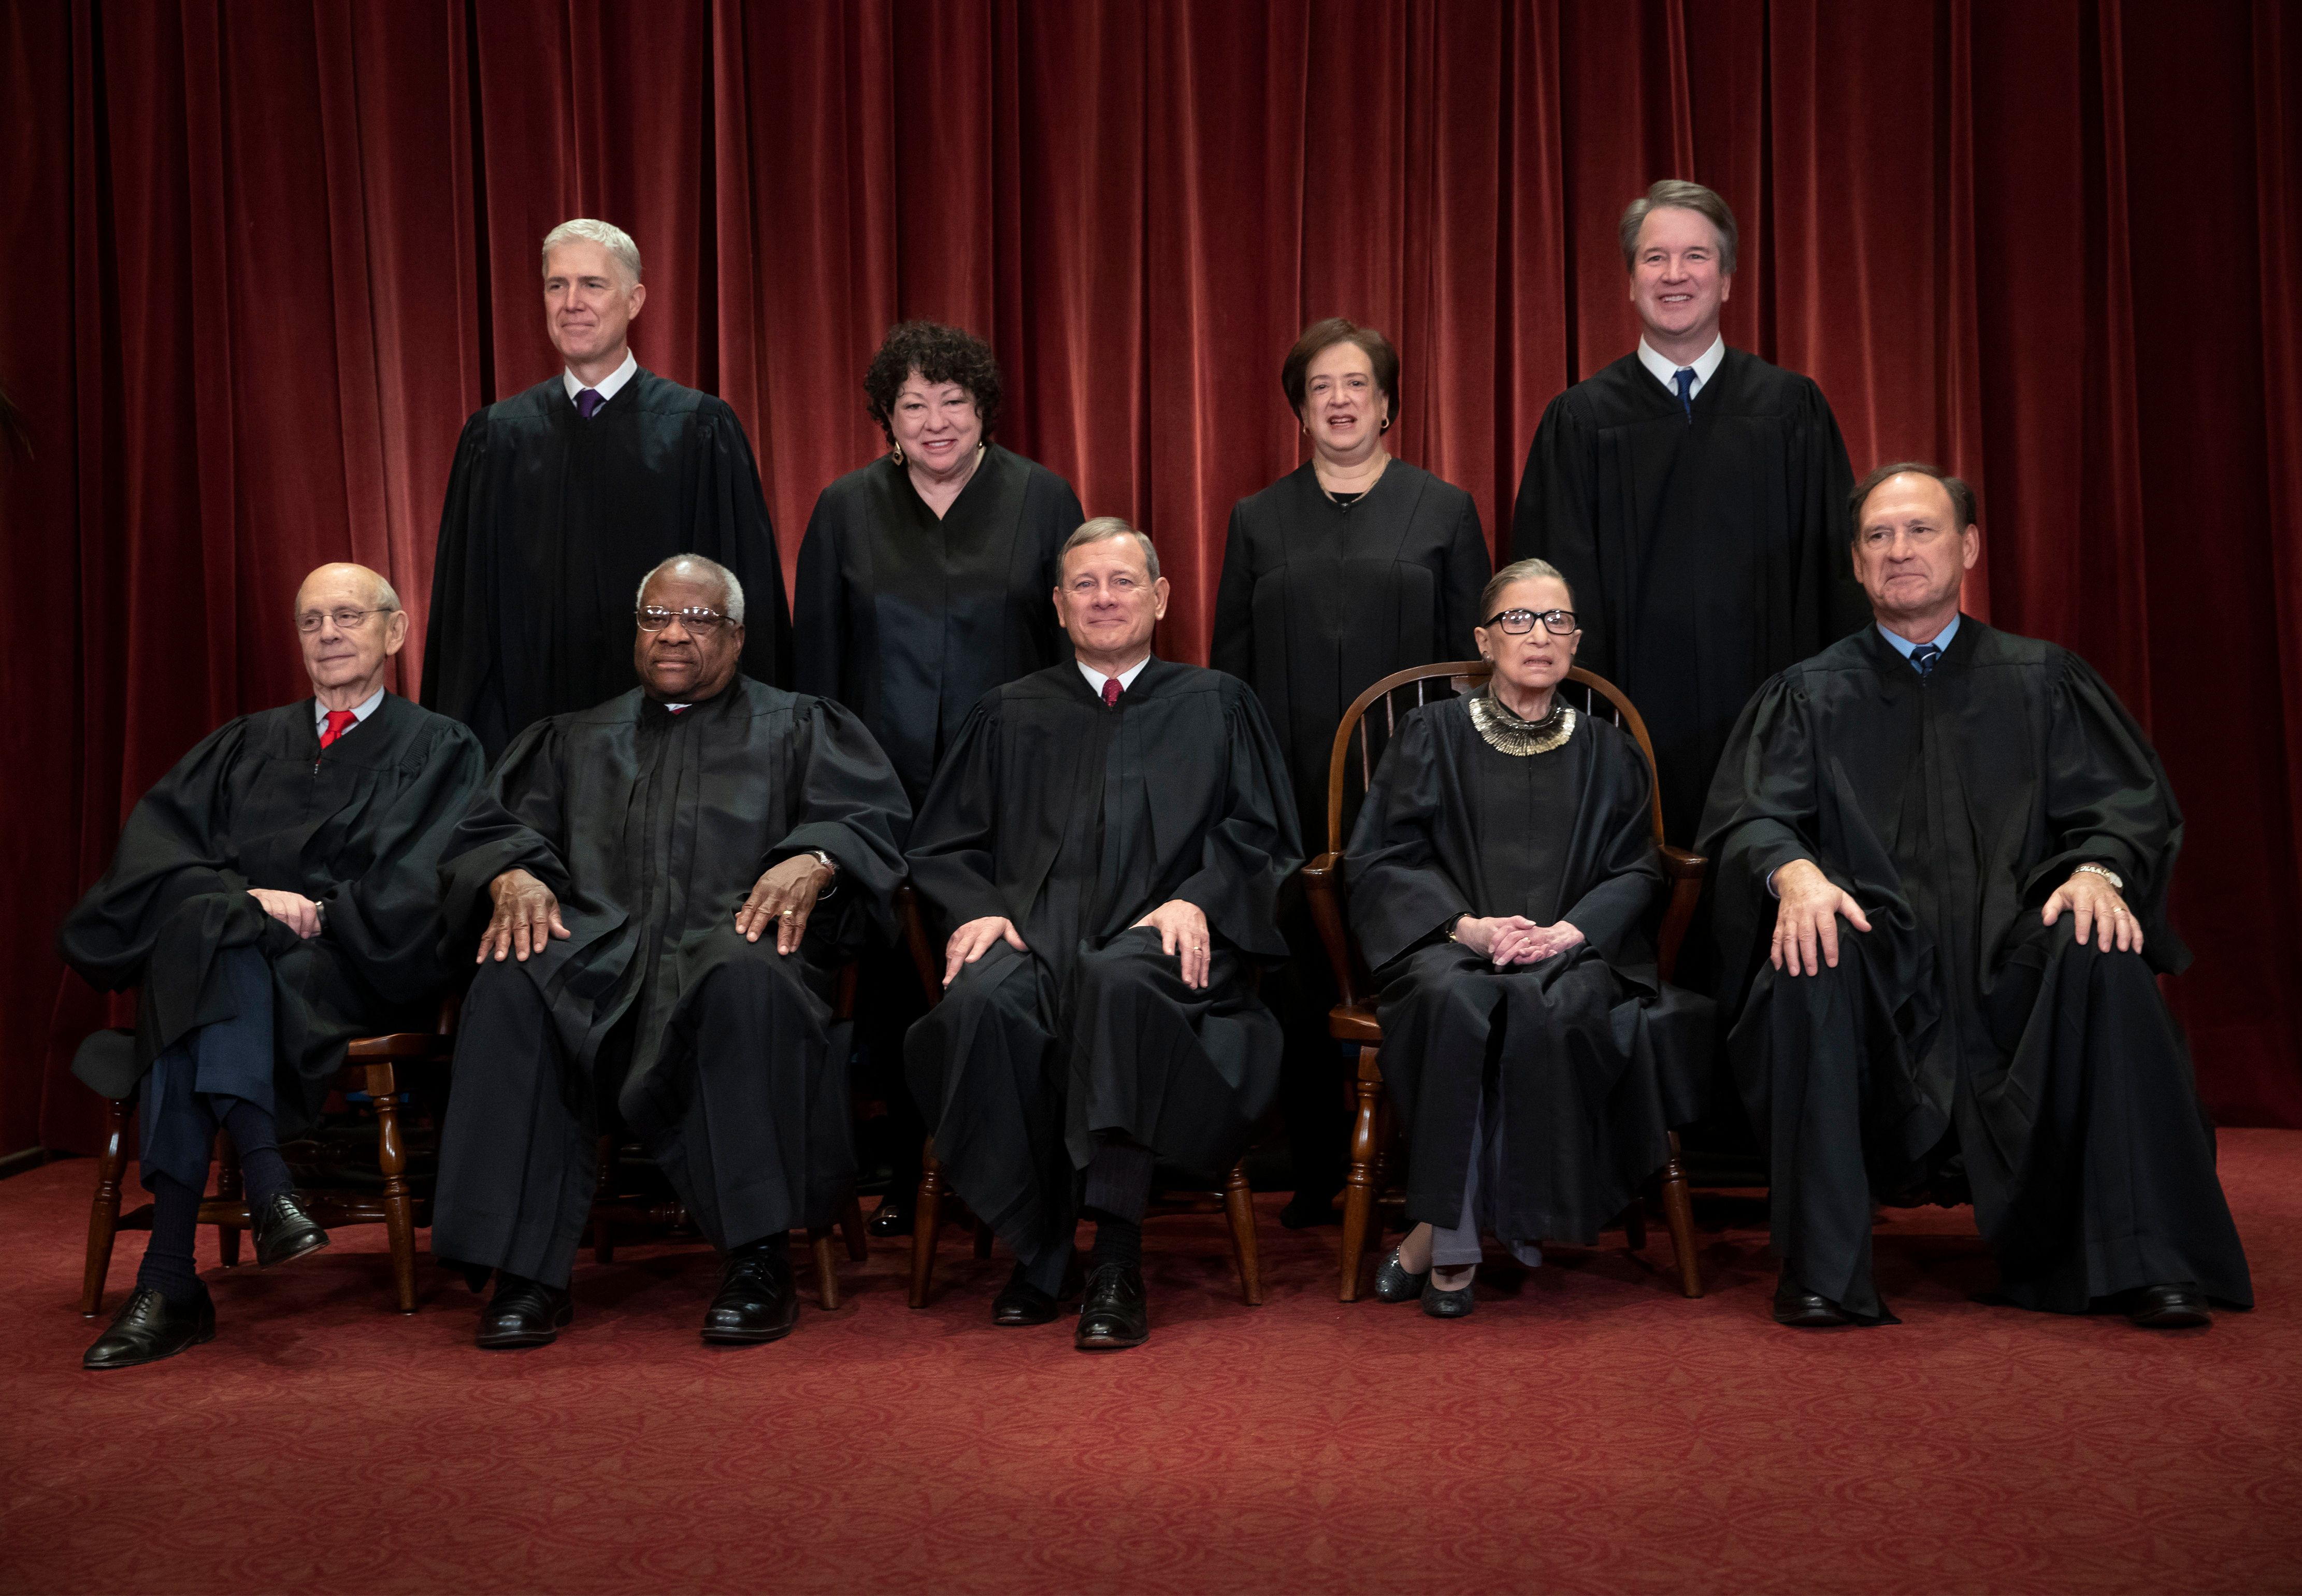 The justices of the U.S. Supreme Court gather for a formal group portrait on Nov. 30. Seated from left: Stephen Breyer, Clarence Thomas, John Roberts, Ruth Bader Ginsburg and Samuel Alito Jr.